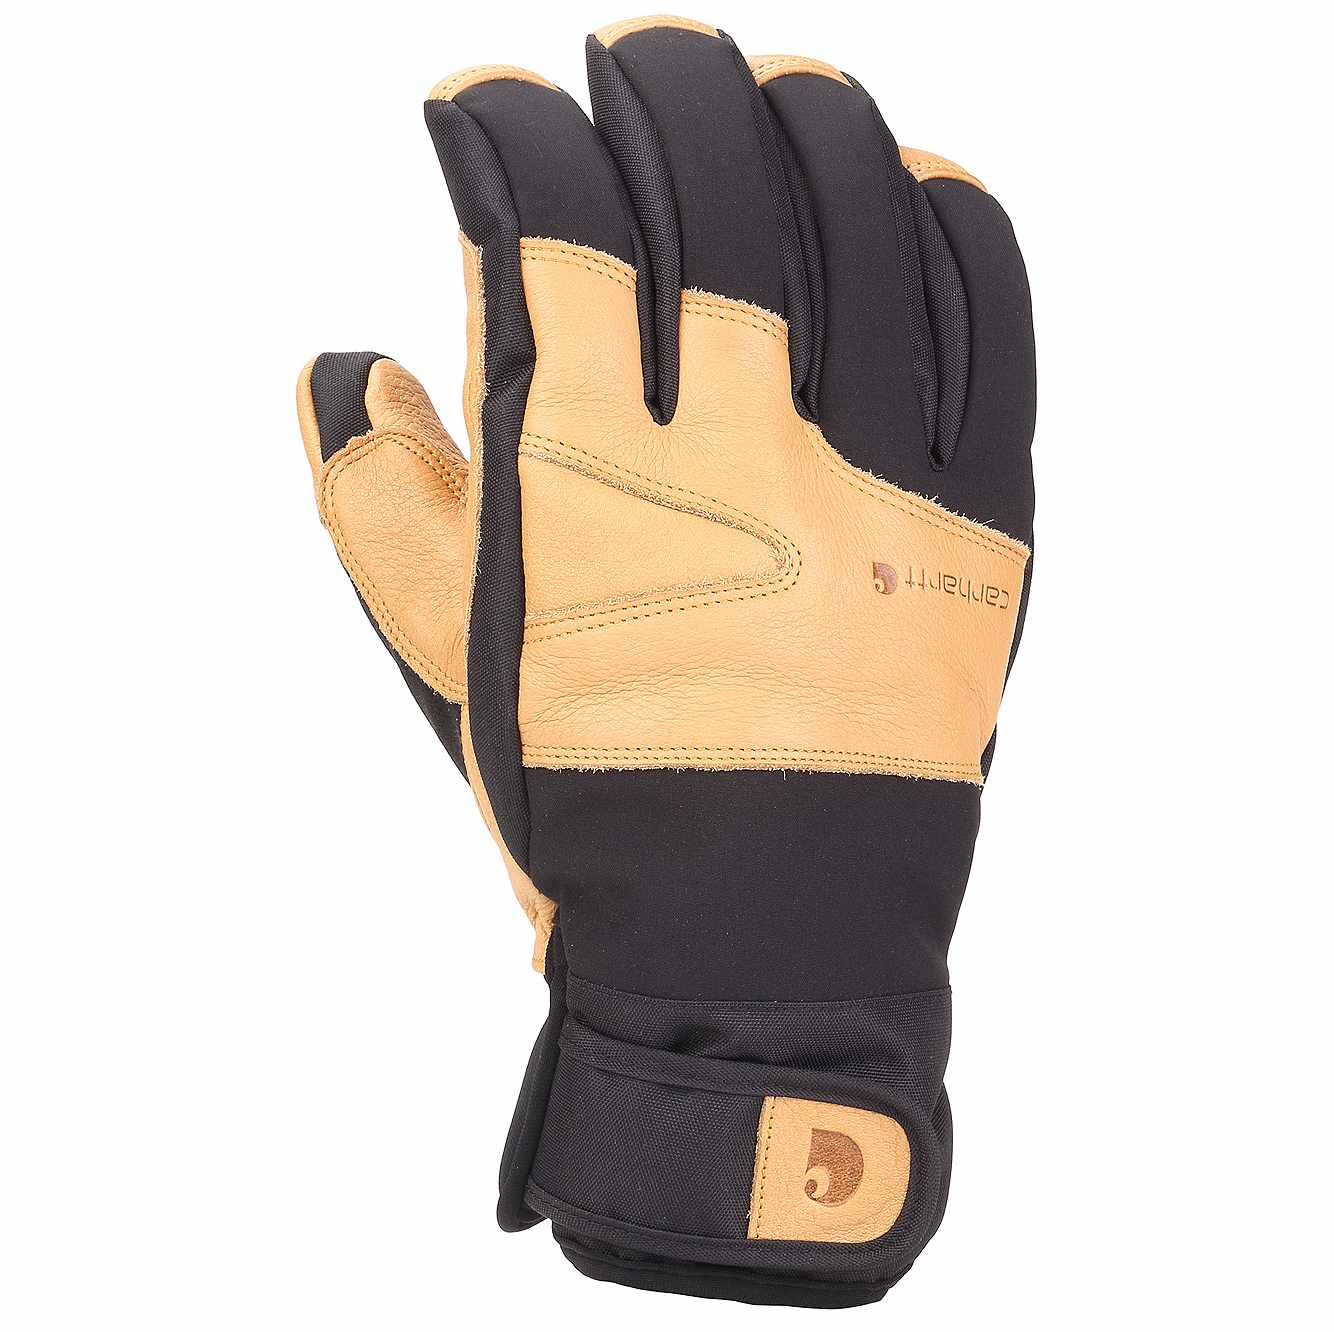 Picture of Winter Dex Cow Grain Insulated Glove in Black Brown